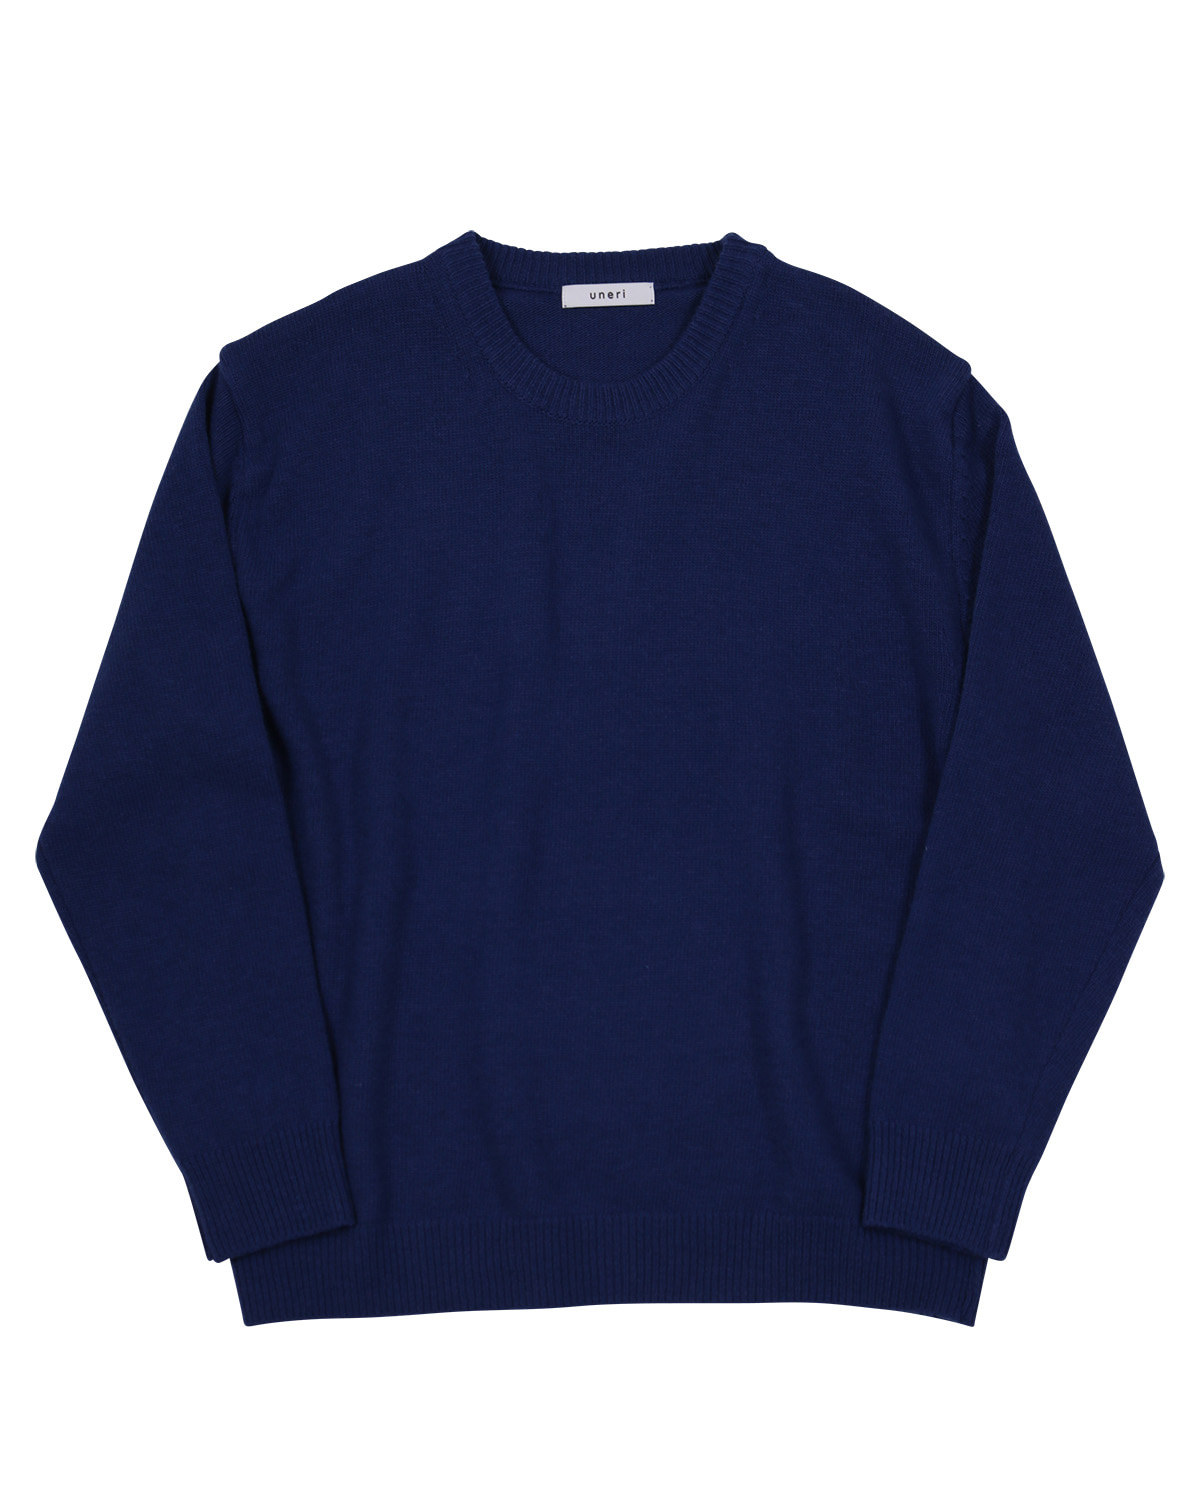 Relaxed Wool Knit _ deepblue